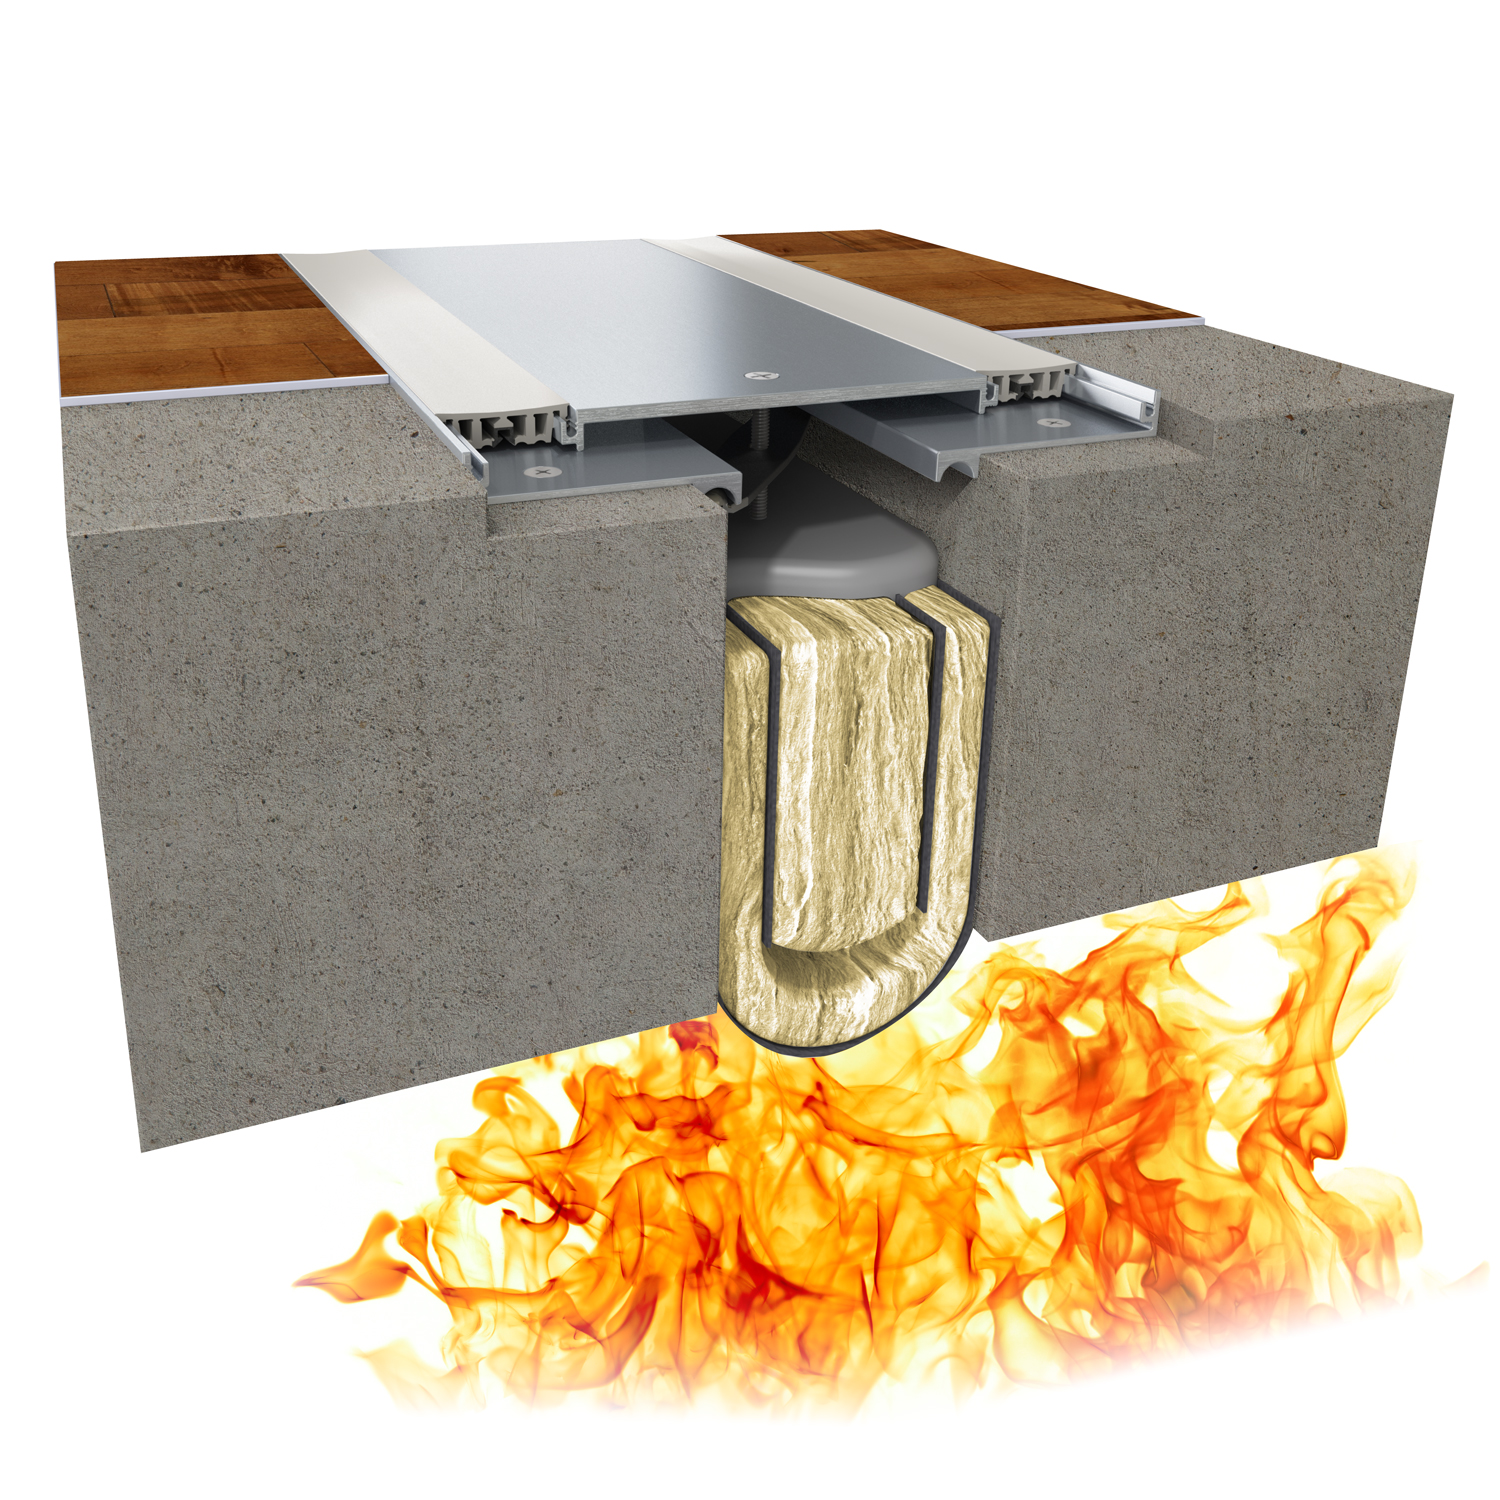 935 Series Mineral Wool and Sealant Fire Barriers up to 5""